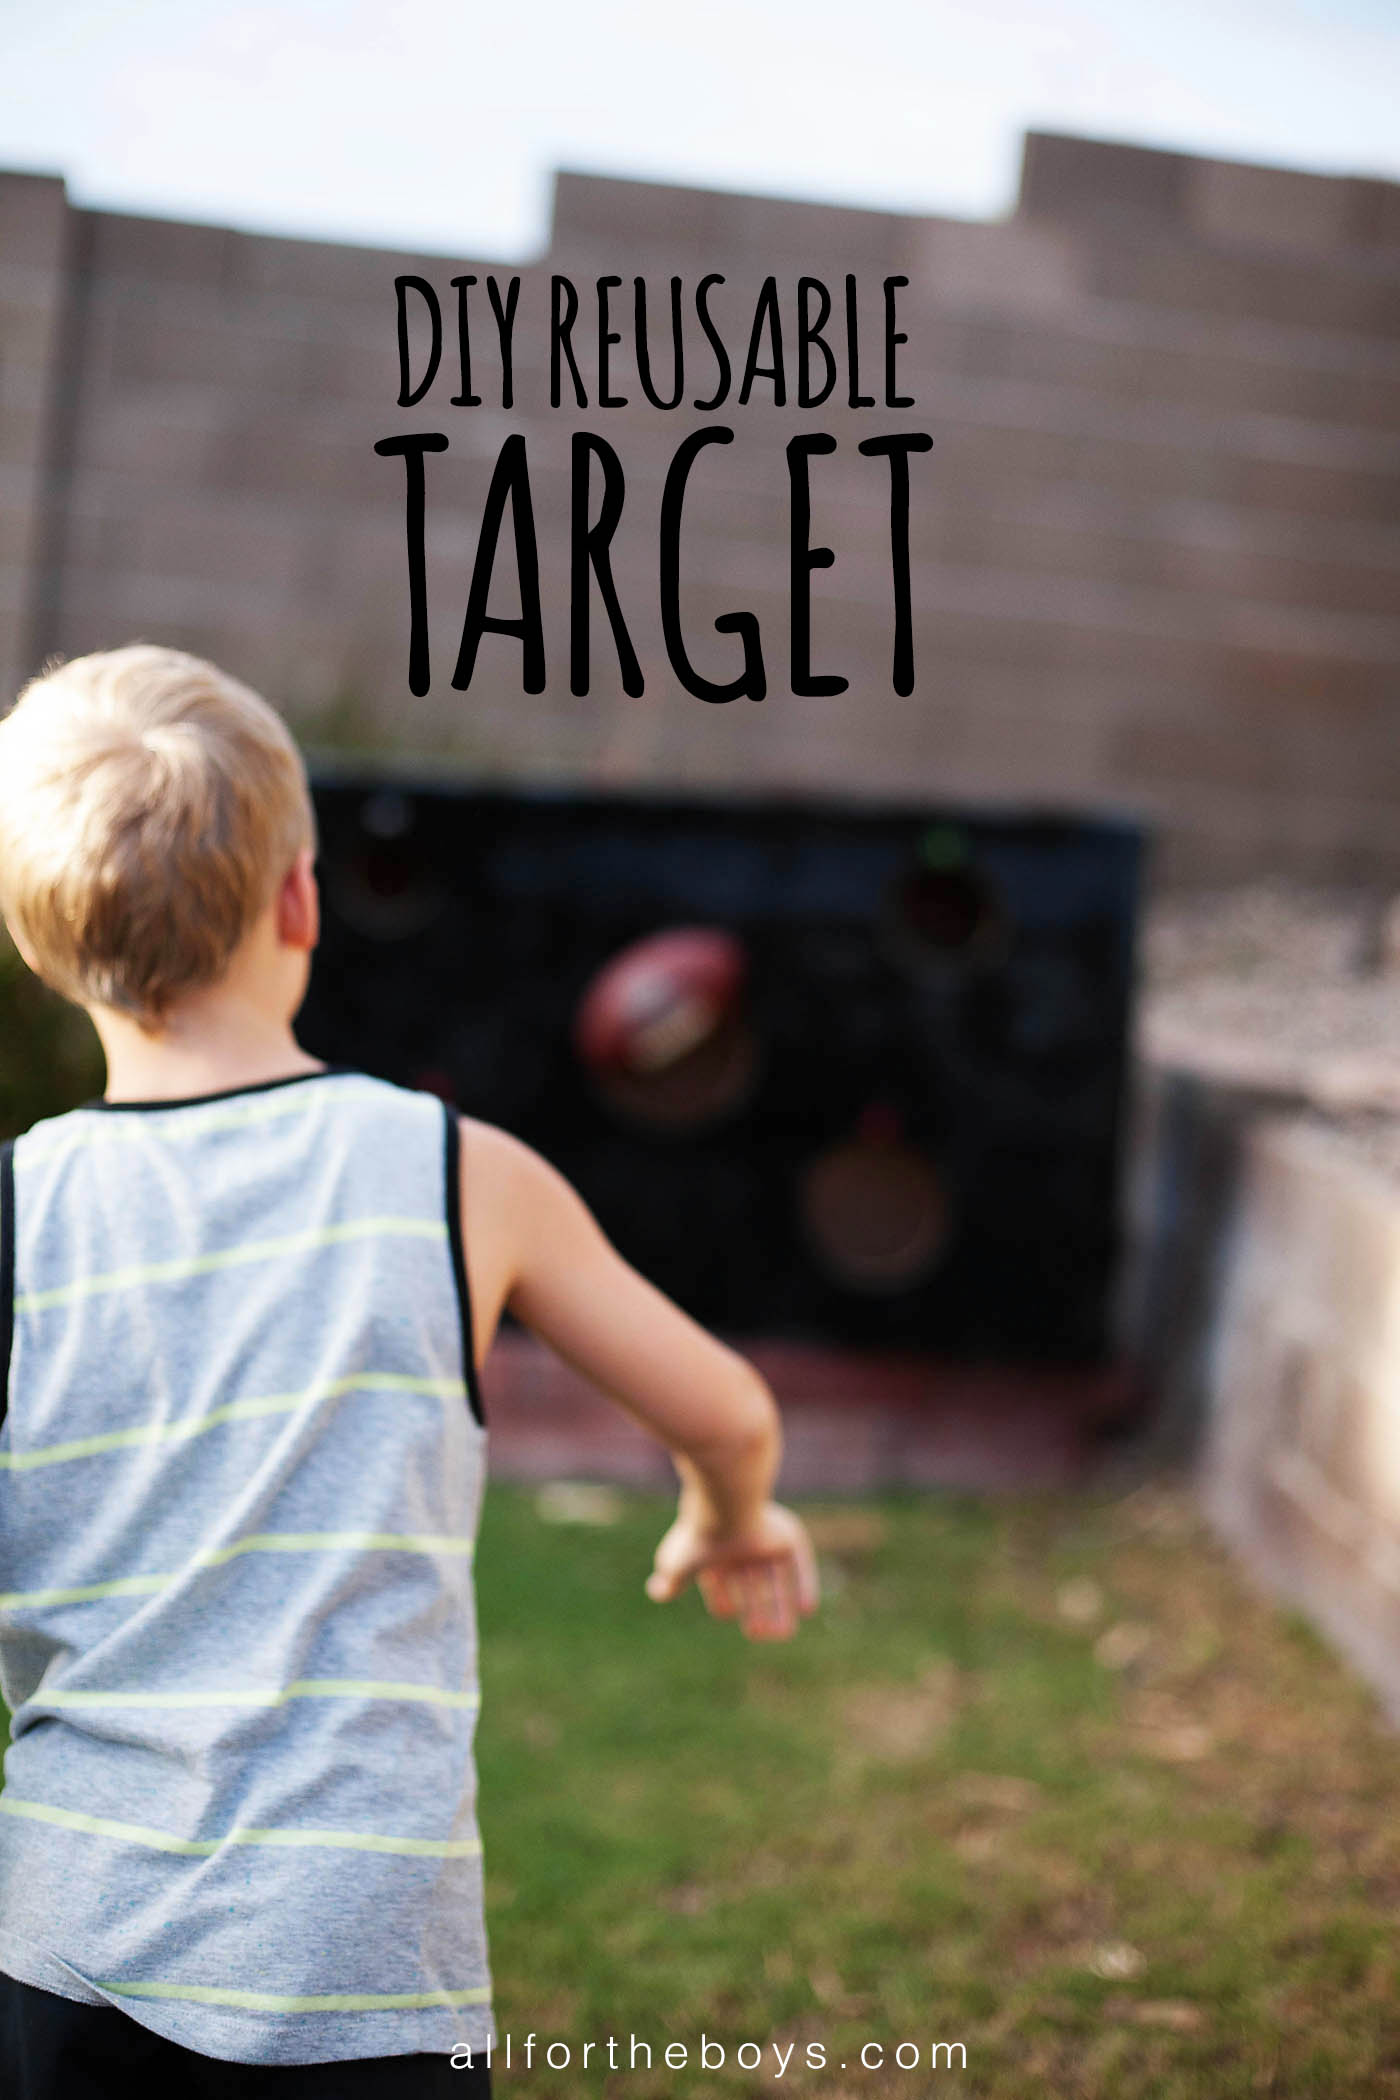 DIY Reusable Target. Cover with pictures for different holidays or parties or just use numbers for points!